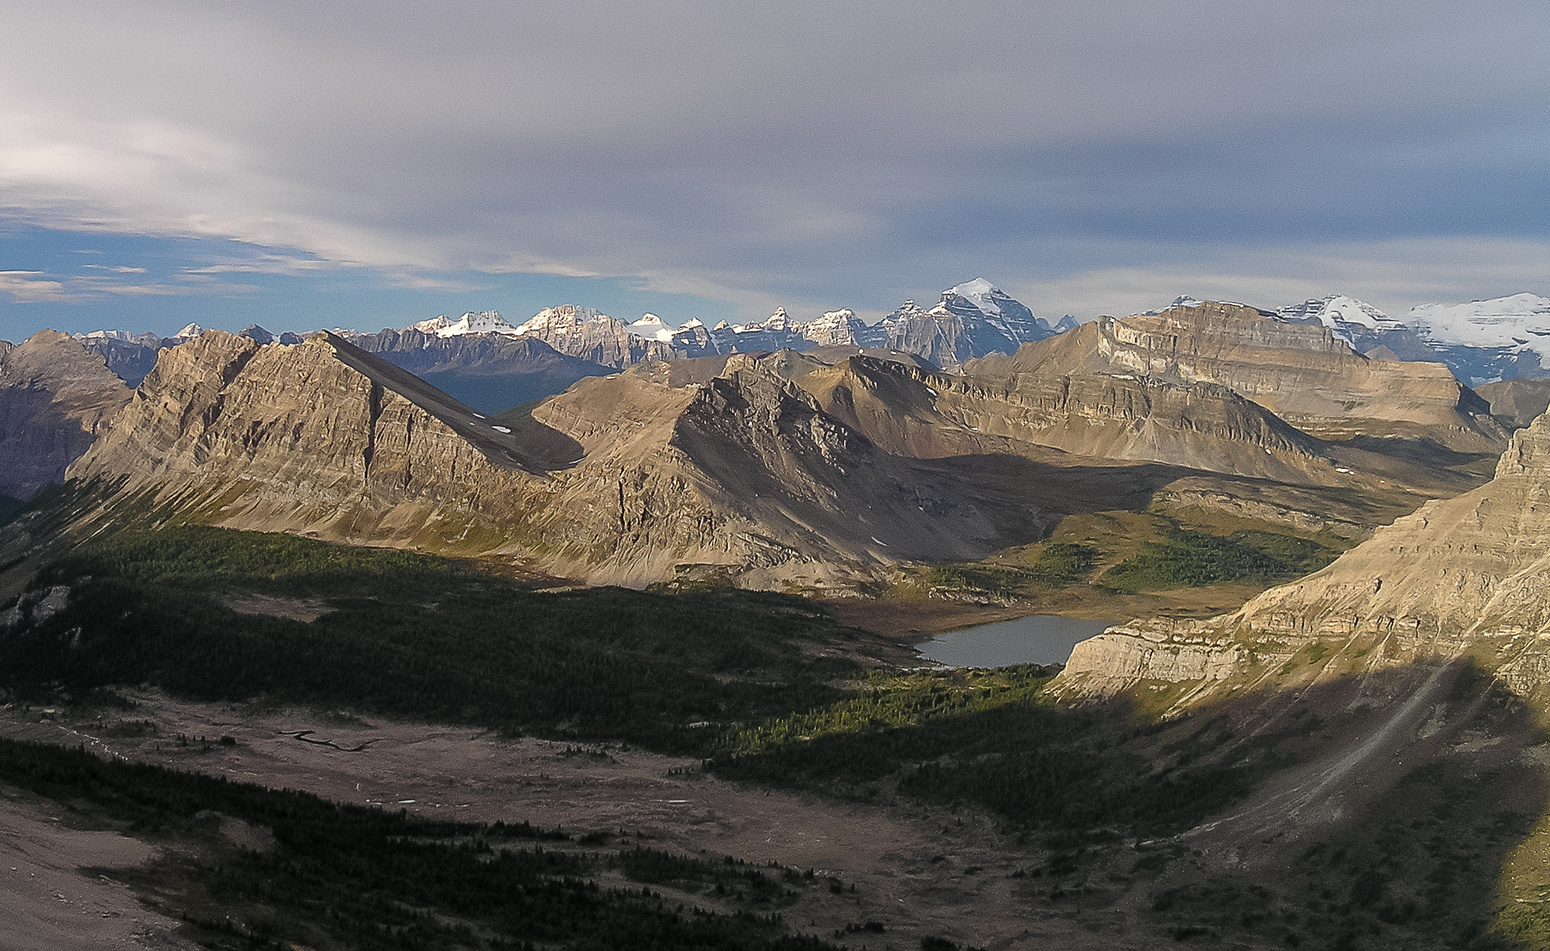 Baker Lake and Anthozoan, Brachiopod, Heather Ridge and Redoubt (L to R) from the southern ascent slopes of Oyster Peak.